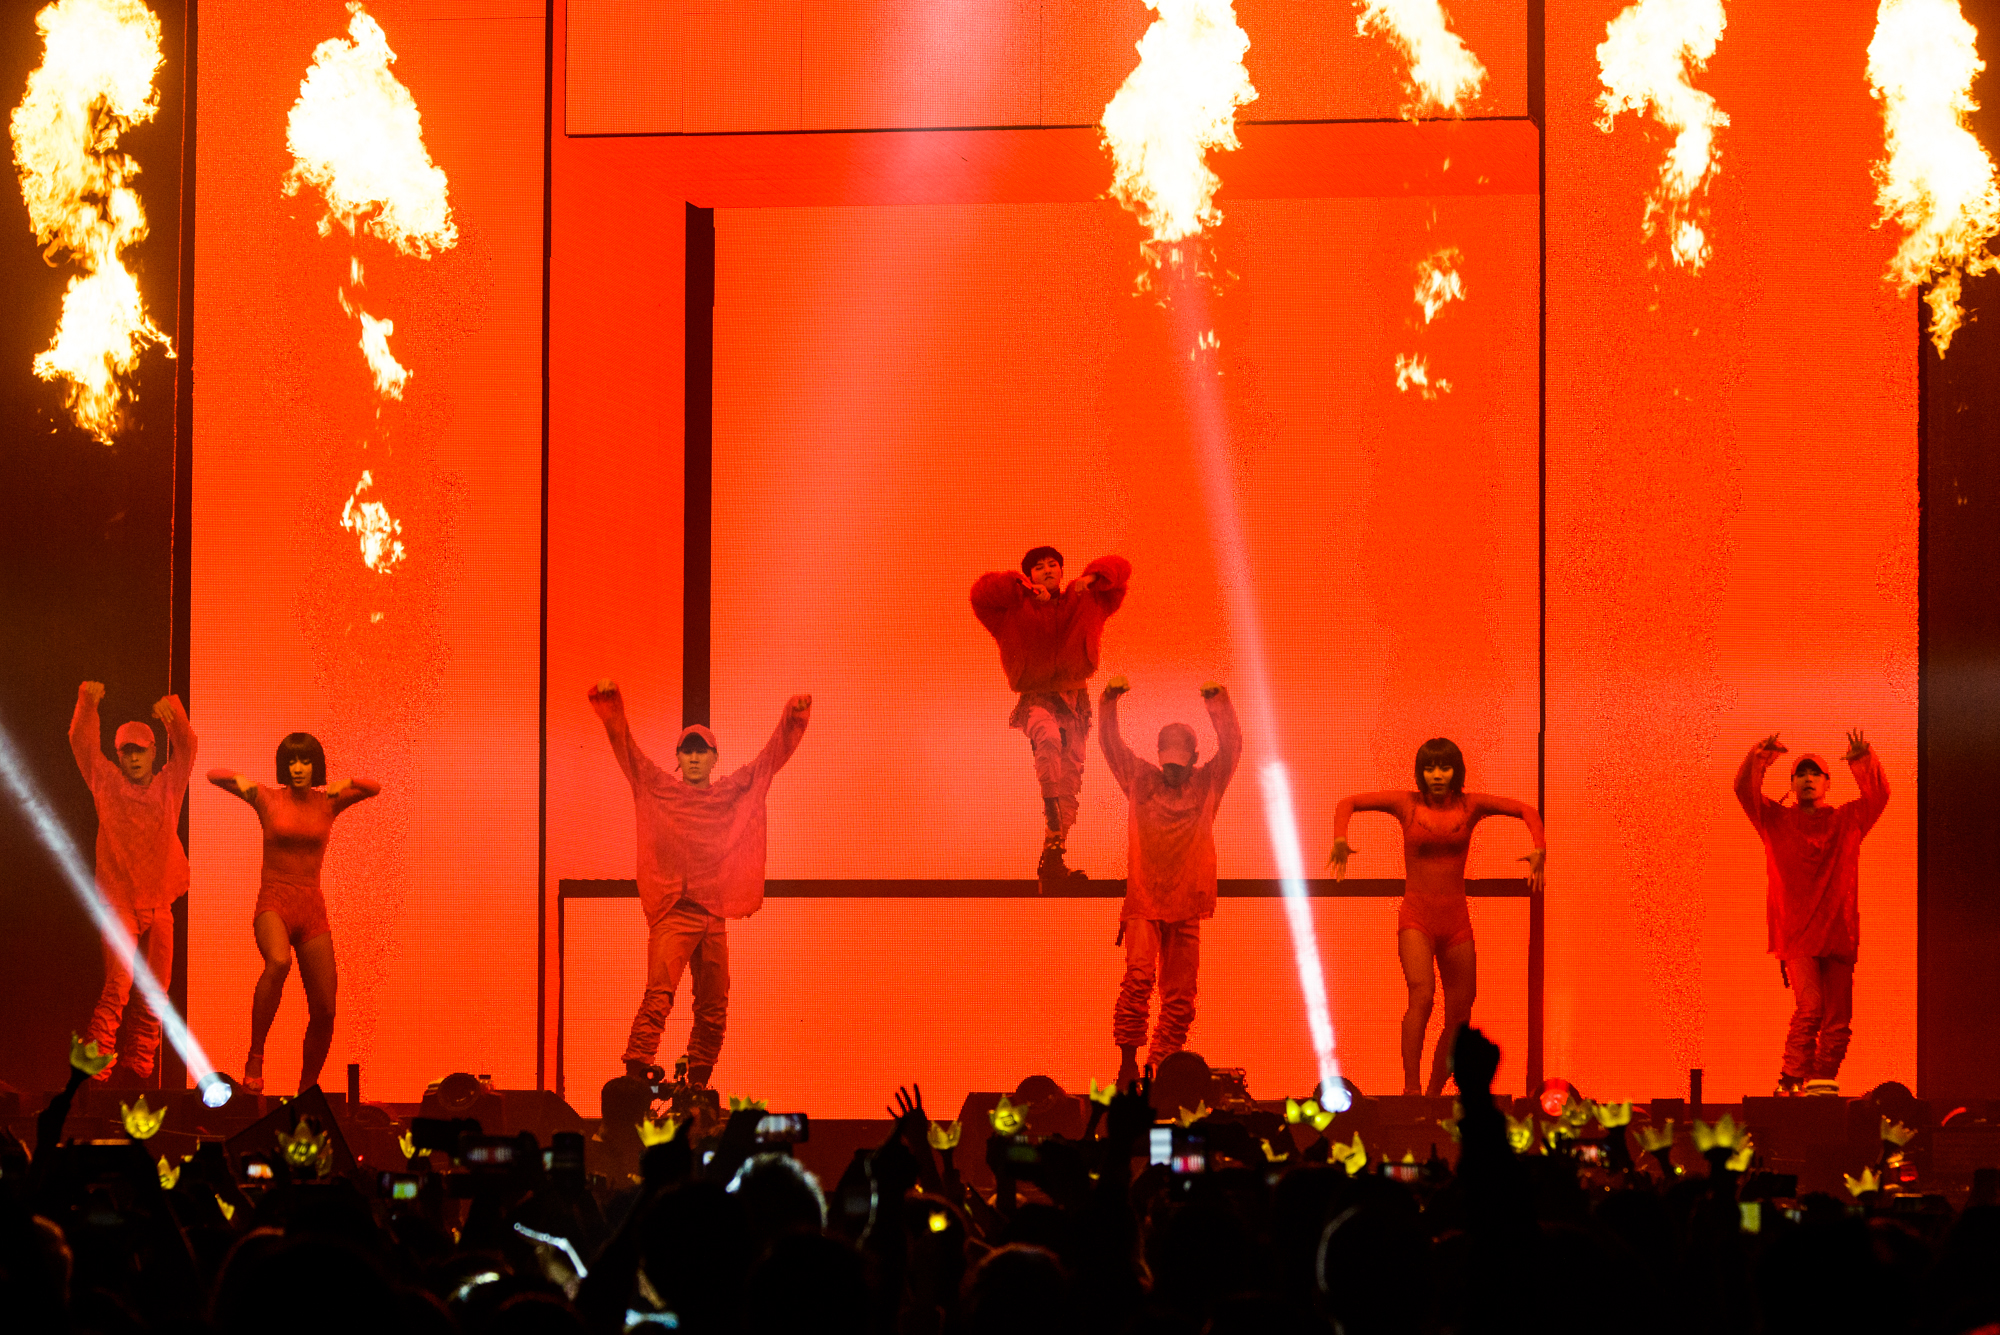 Live Review: G-Dragon 'Act III Motte' – Hisense Arena, Melbourne (12.08.17)